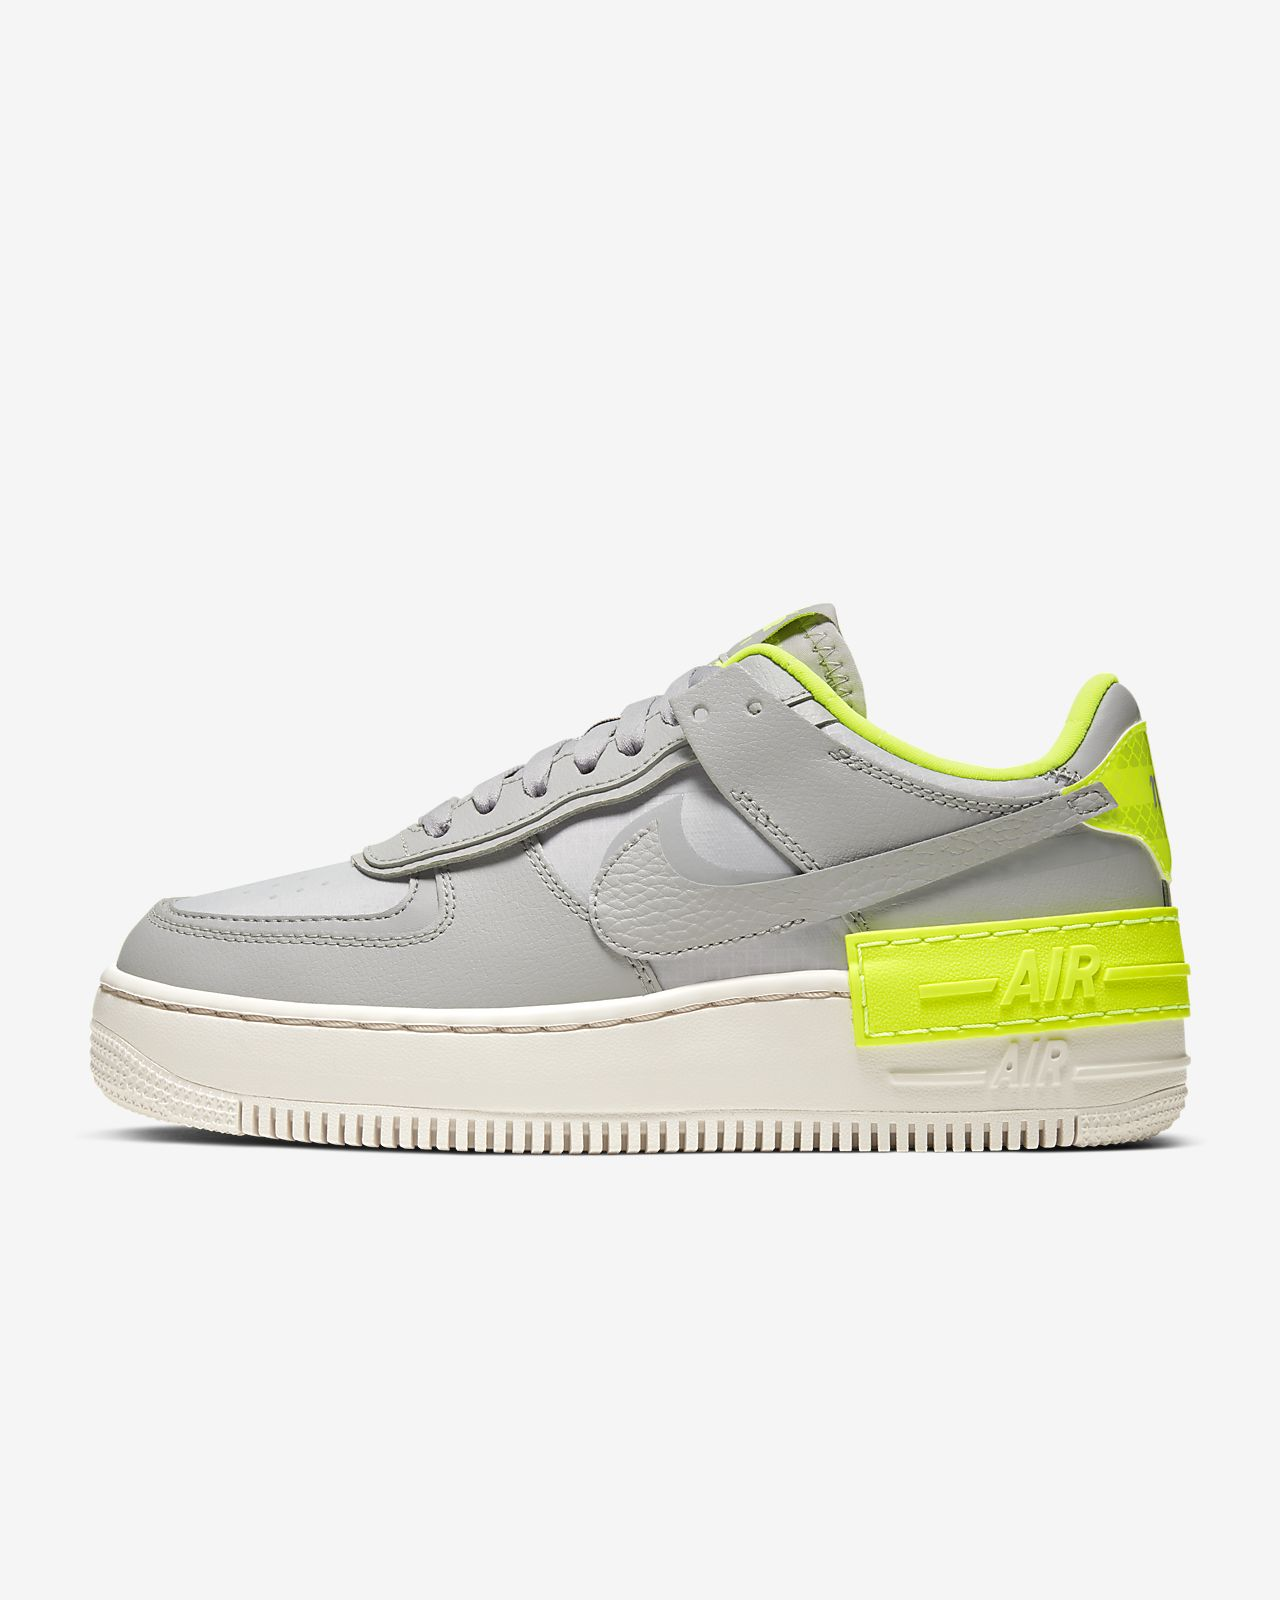 Nike AF1 Shadow SE Women's Shoe